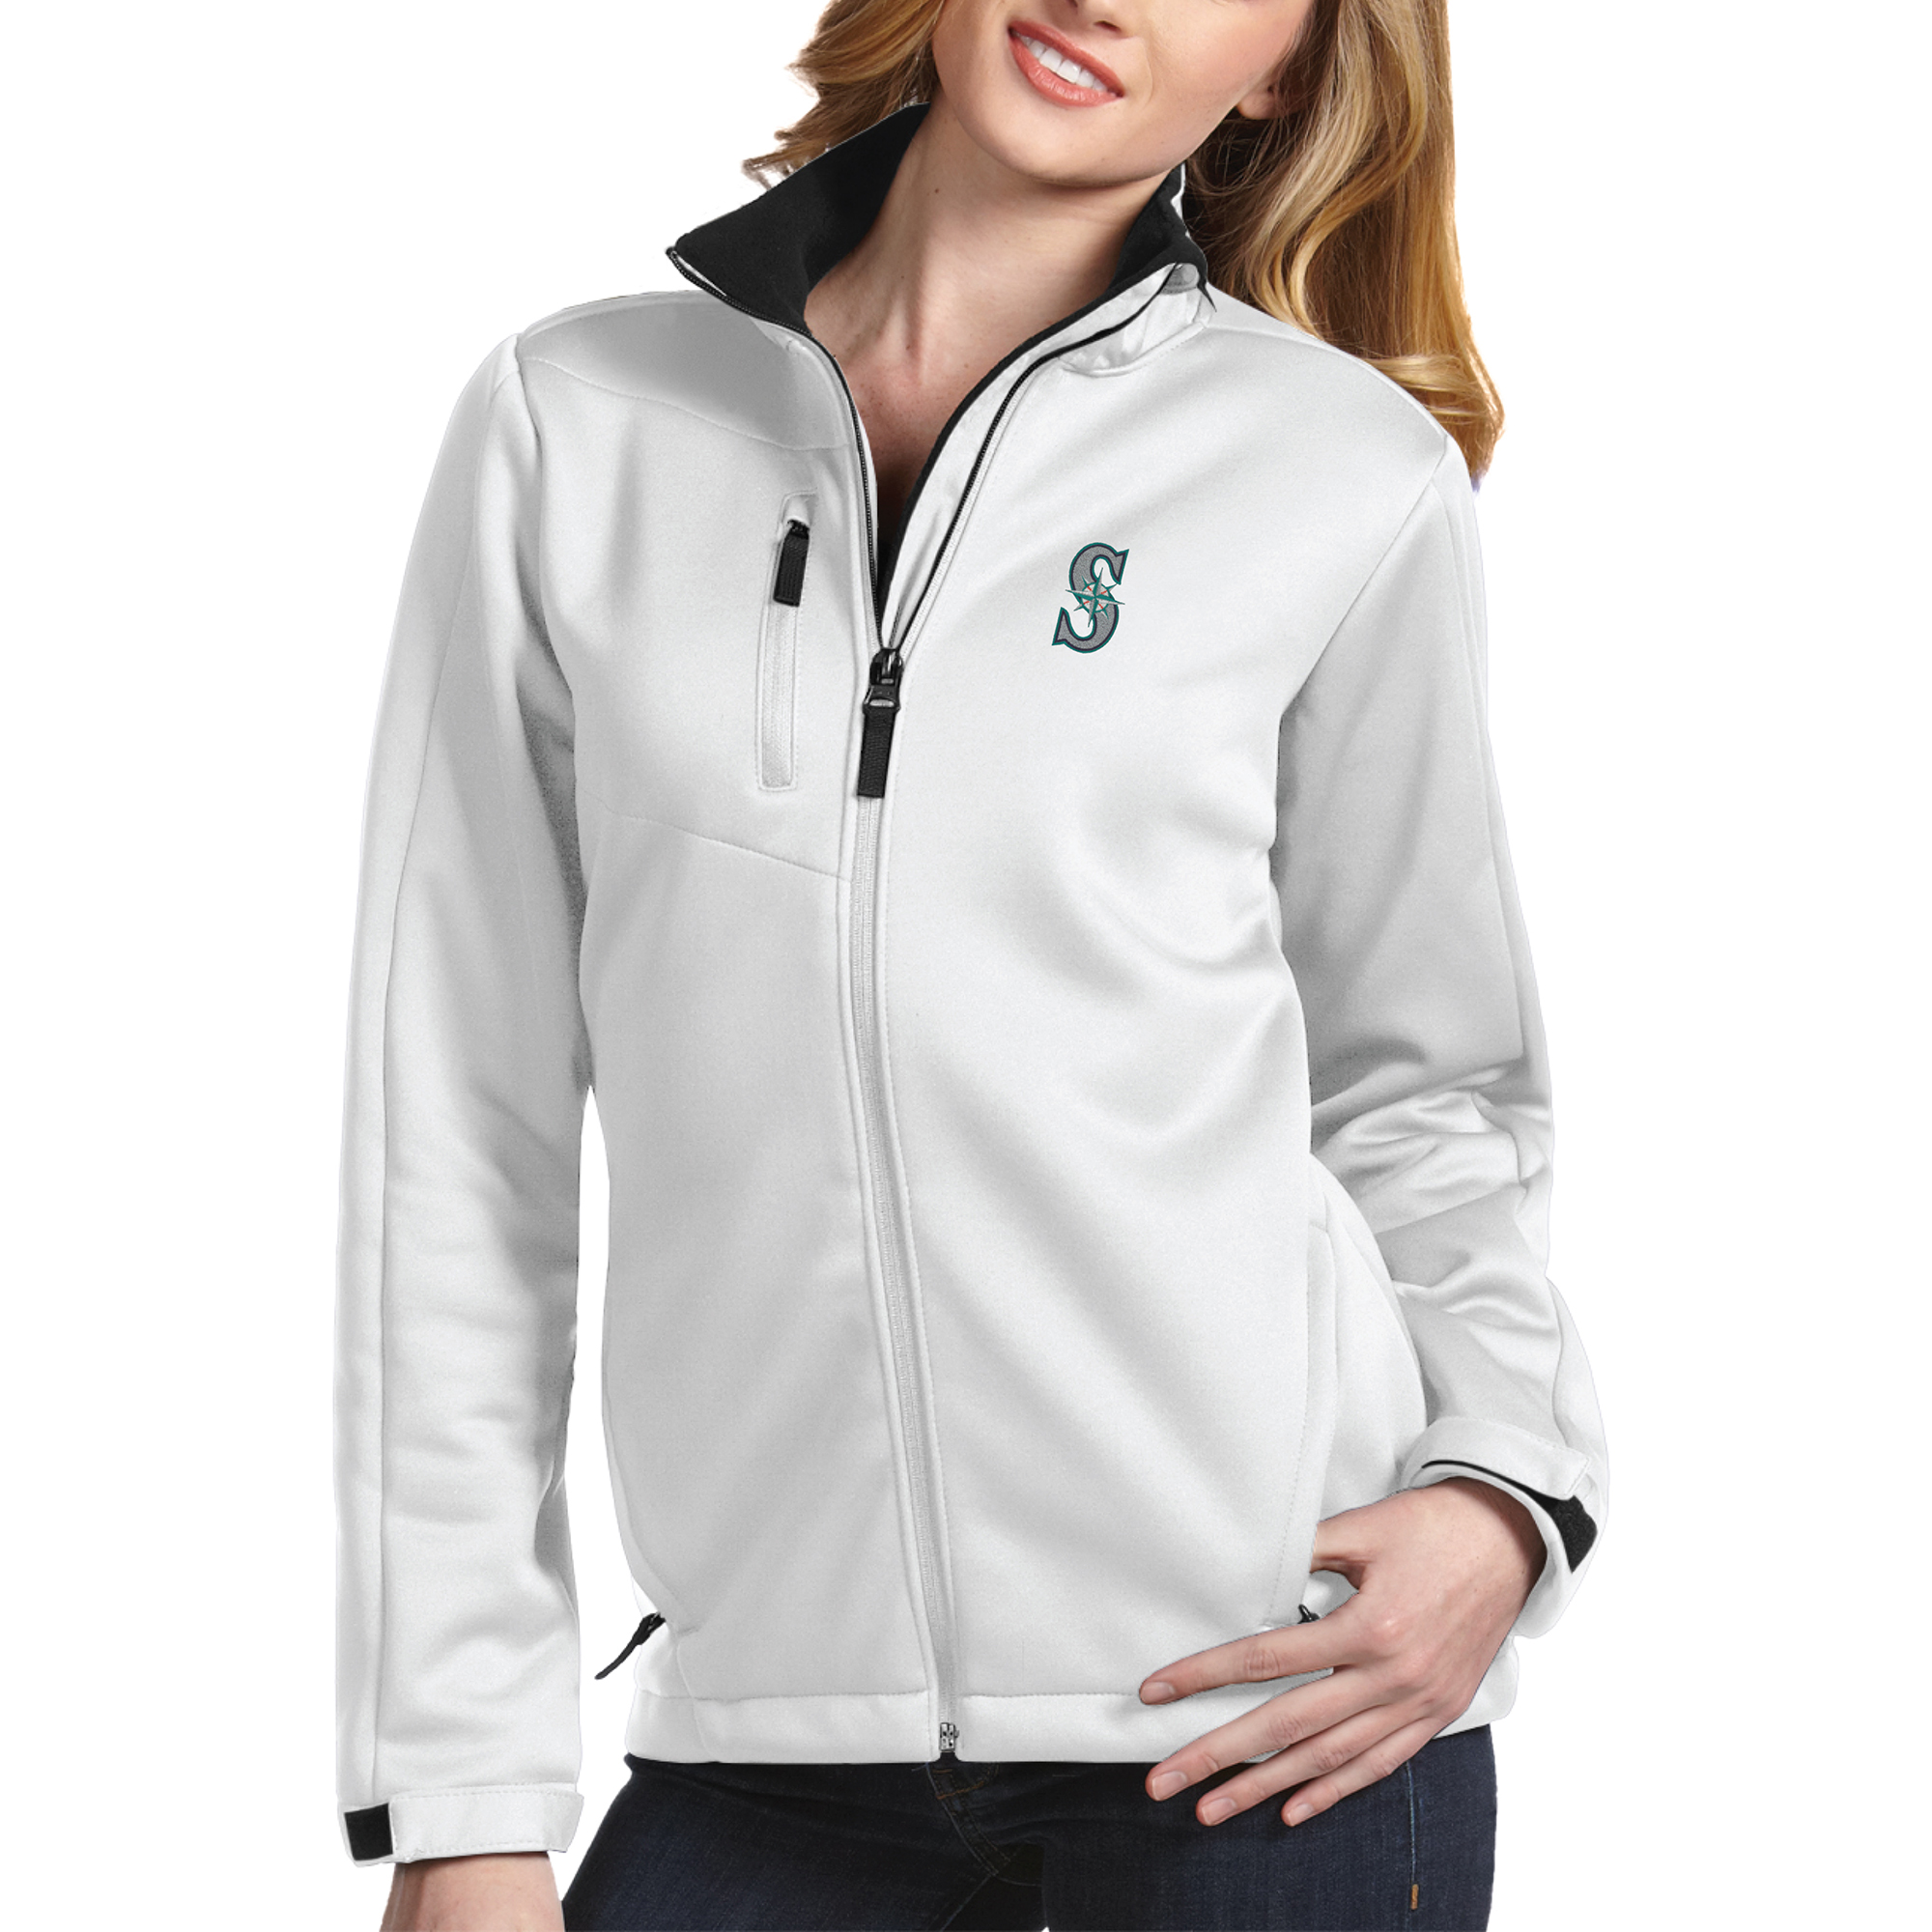 Seattle Mariners Antigua Women's Traverse Jacket White by ANTIGUA GROUP/ 22534